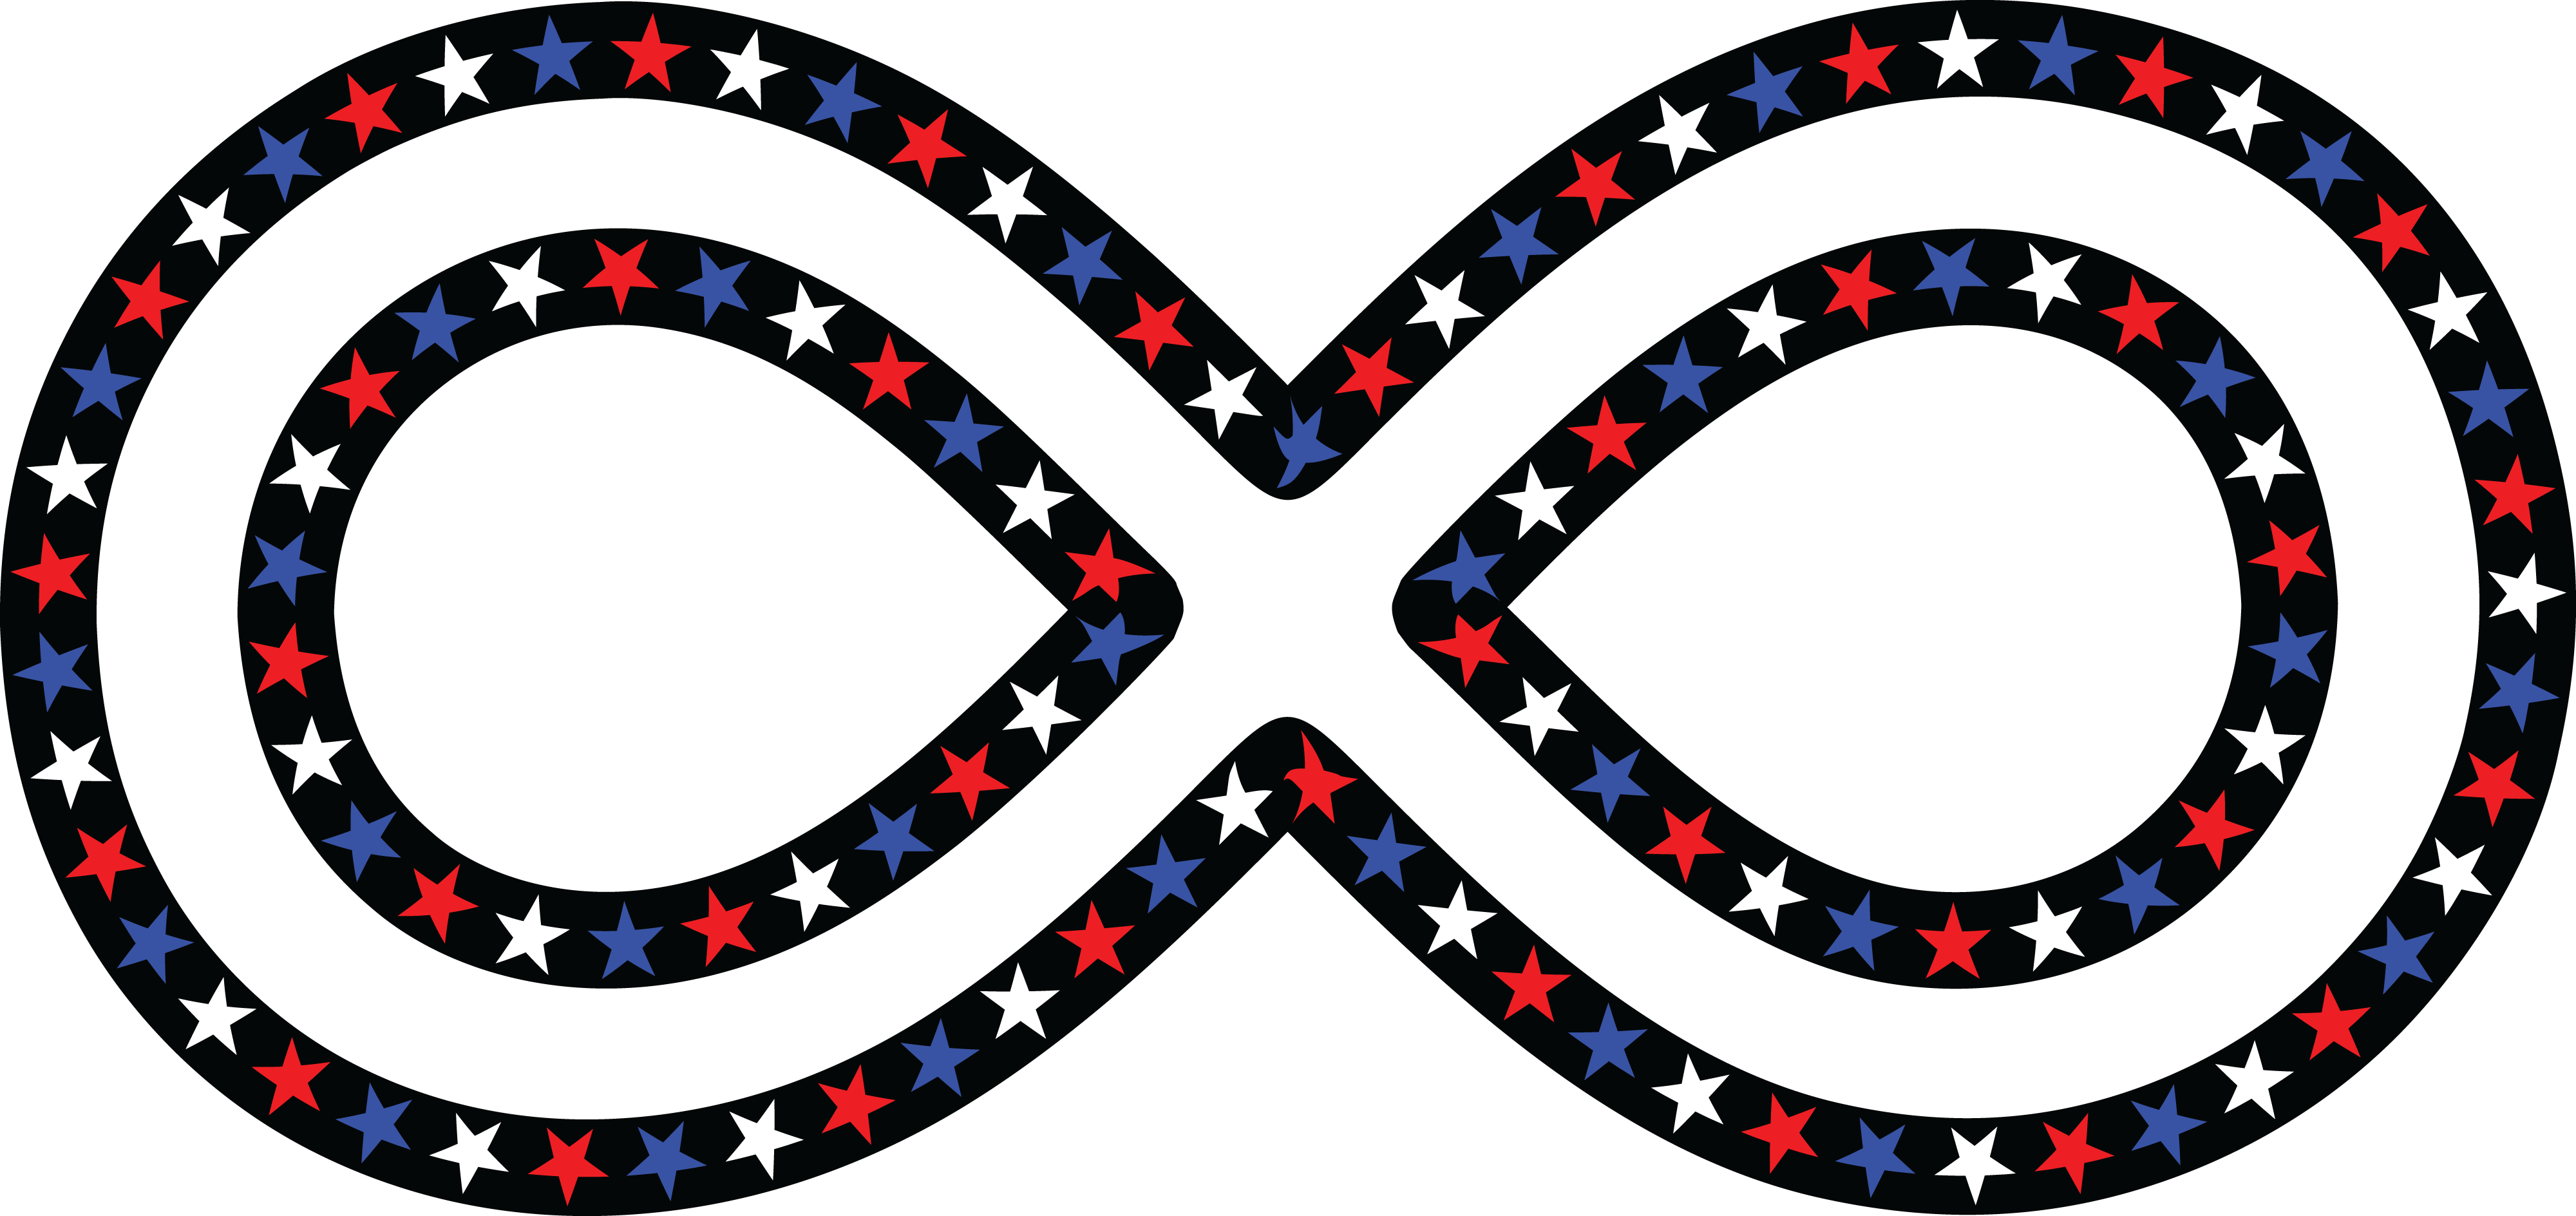 Free Clipart Of A Patriotic American Star Patterned Infinity Symbol